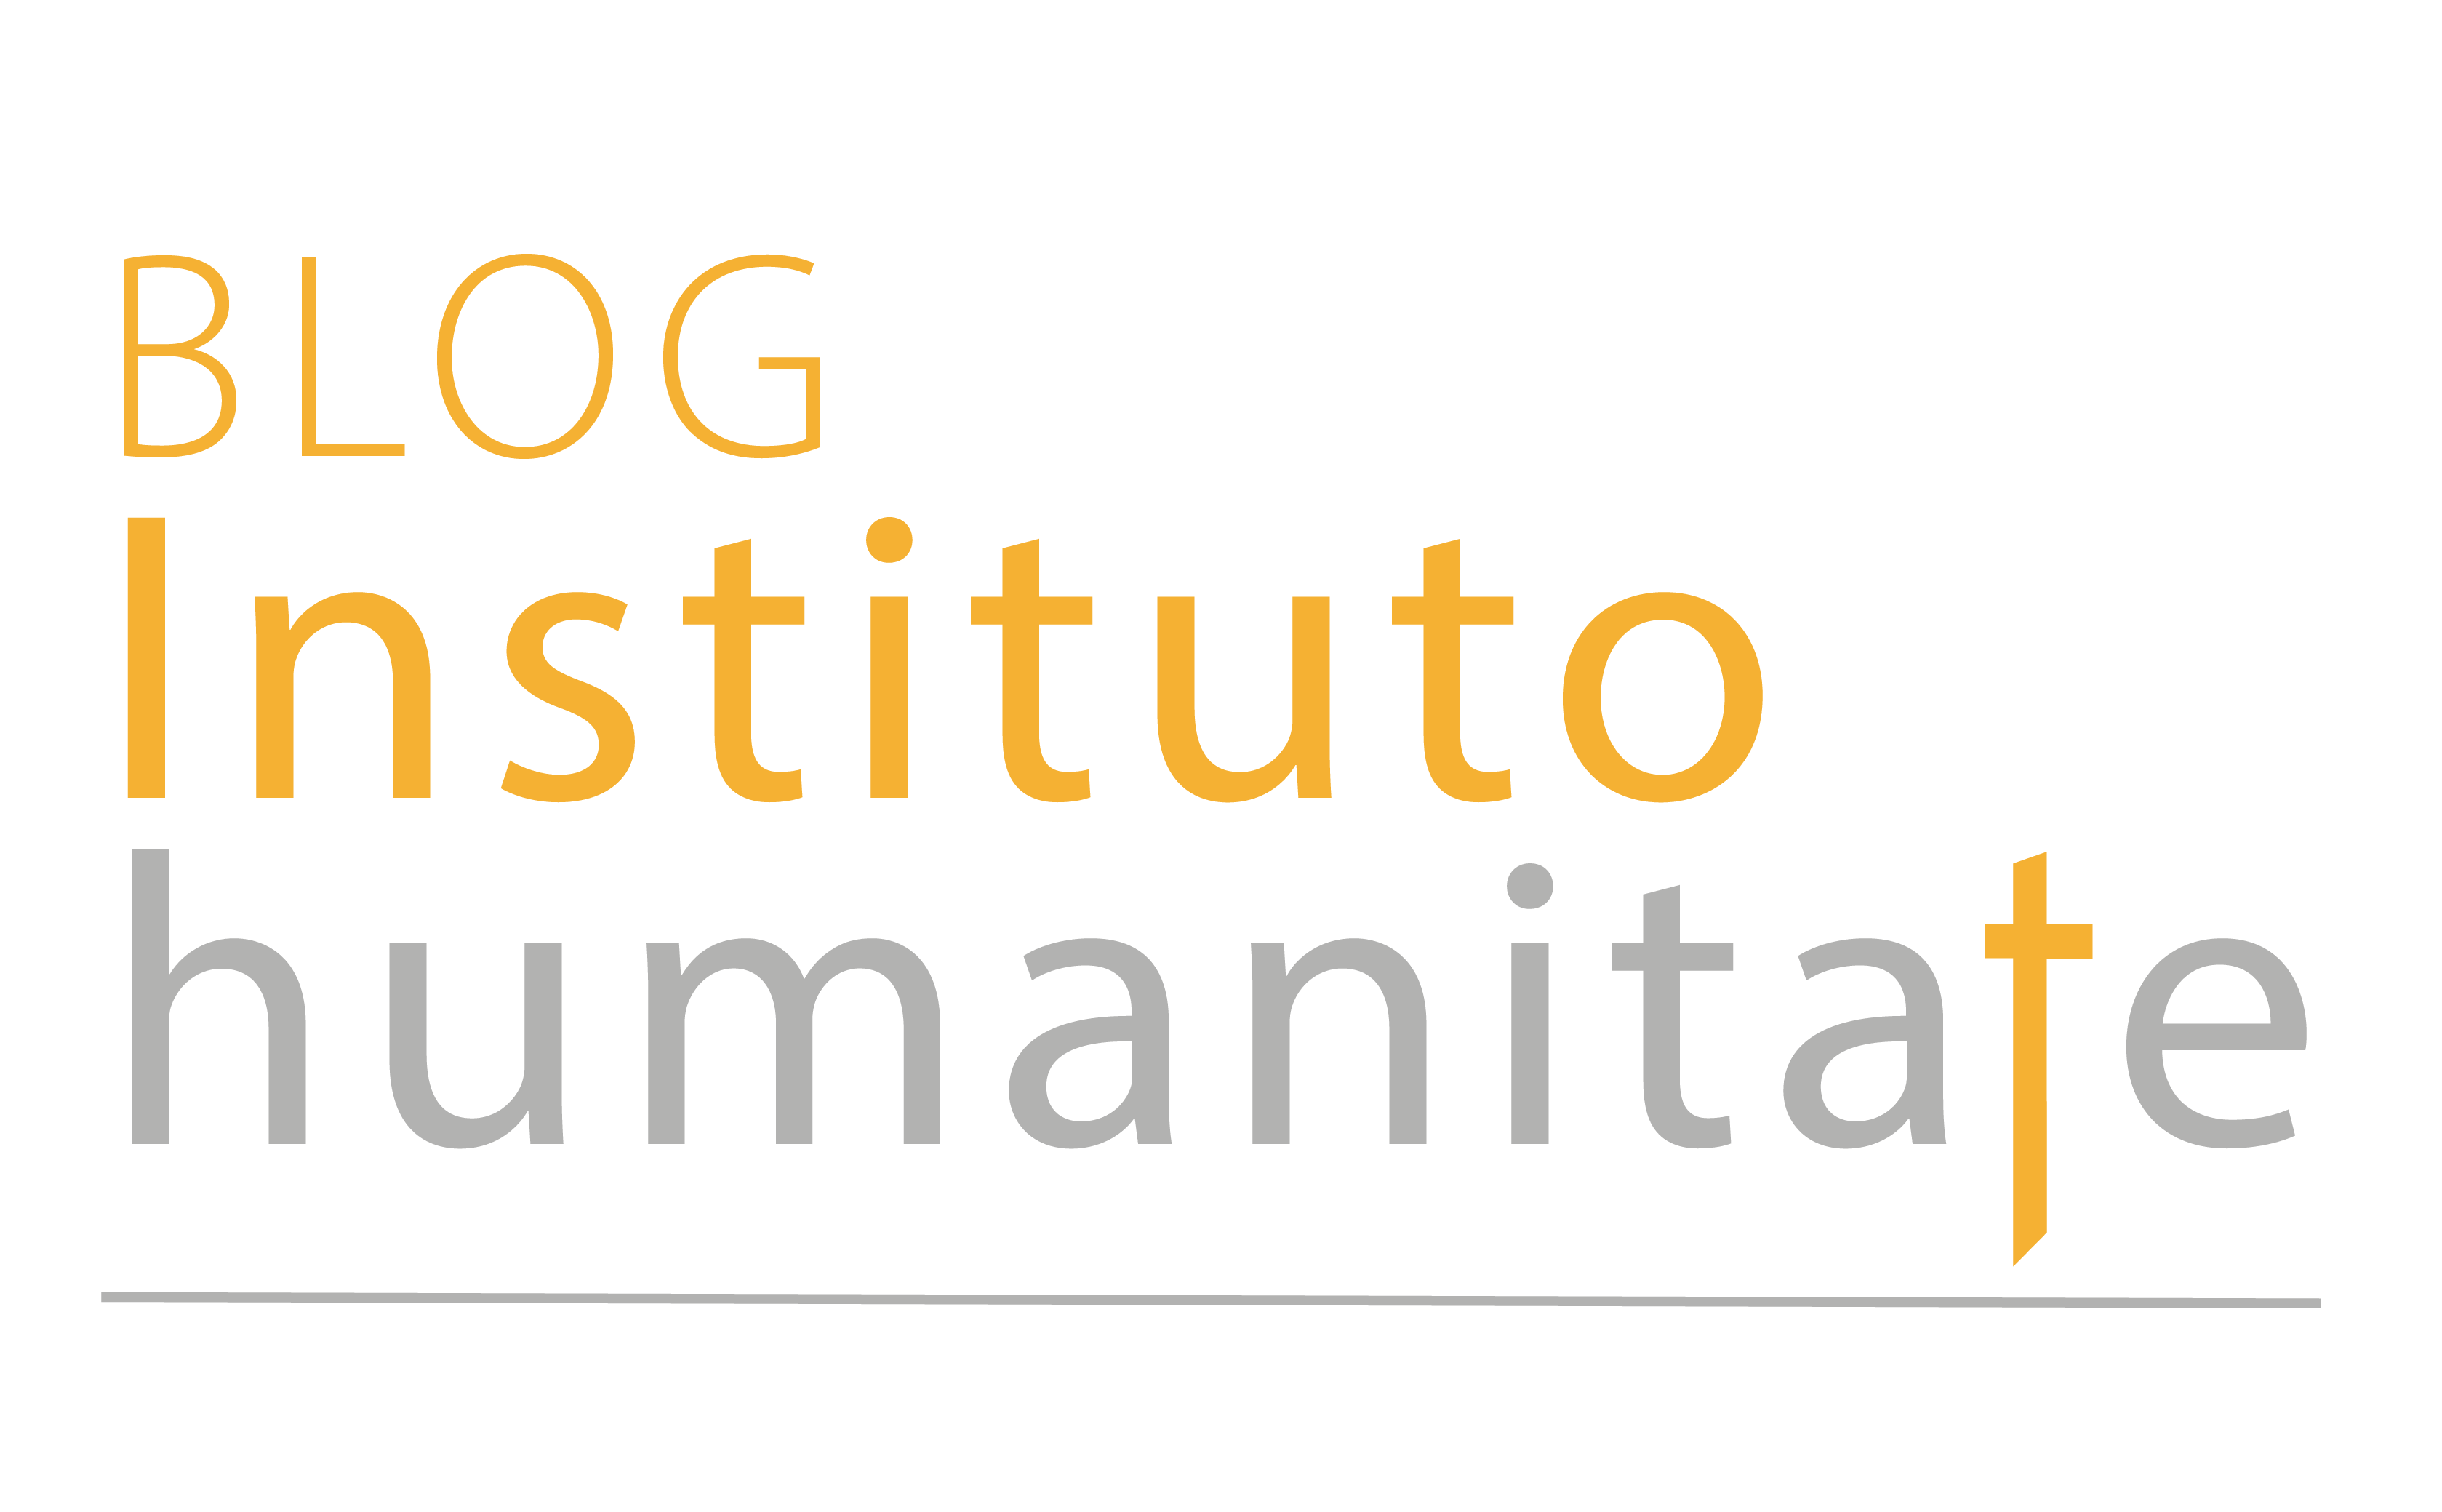 Blog Instituto Humanitate